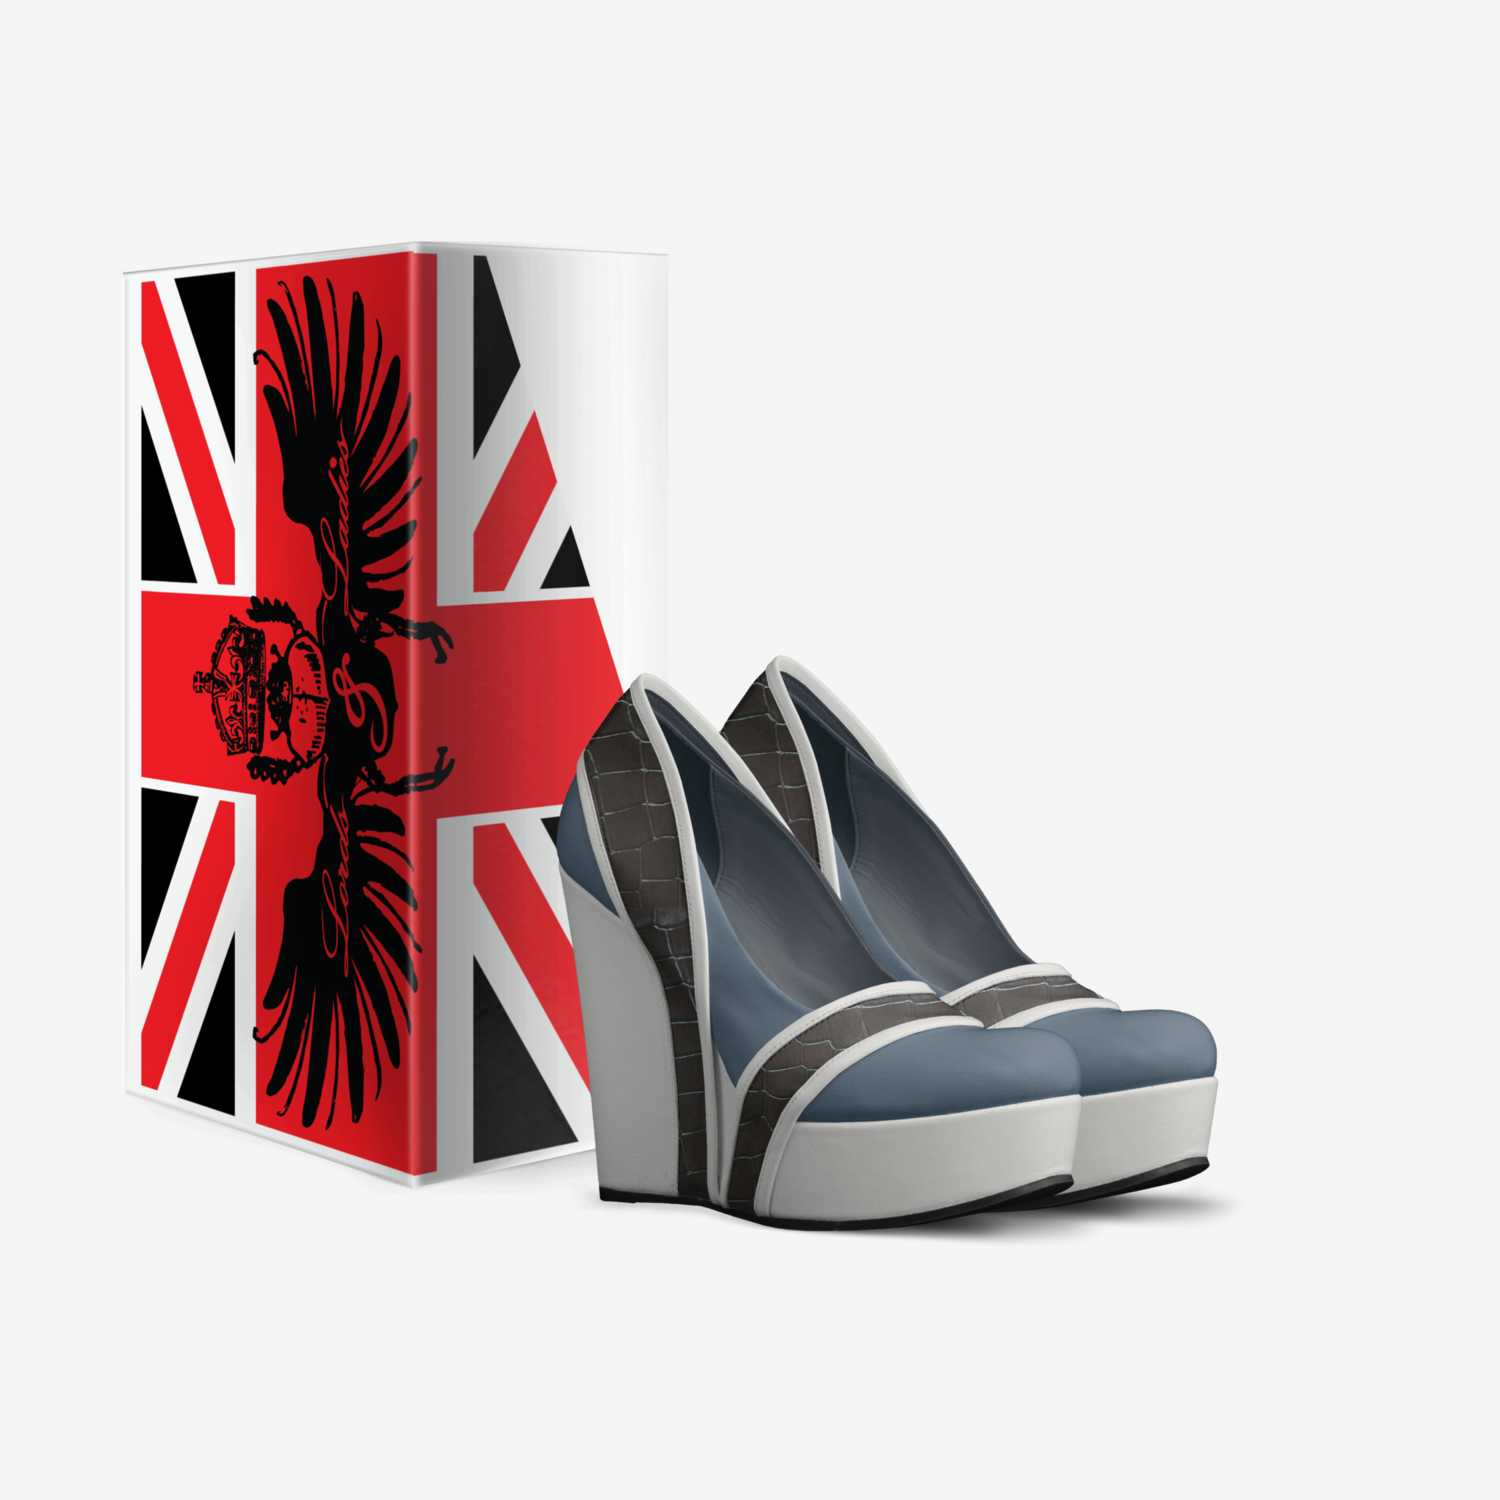 Elle custom made in Italy shoes by David Wall | Box view